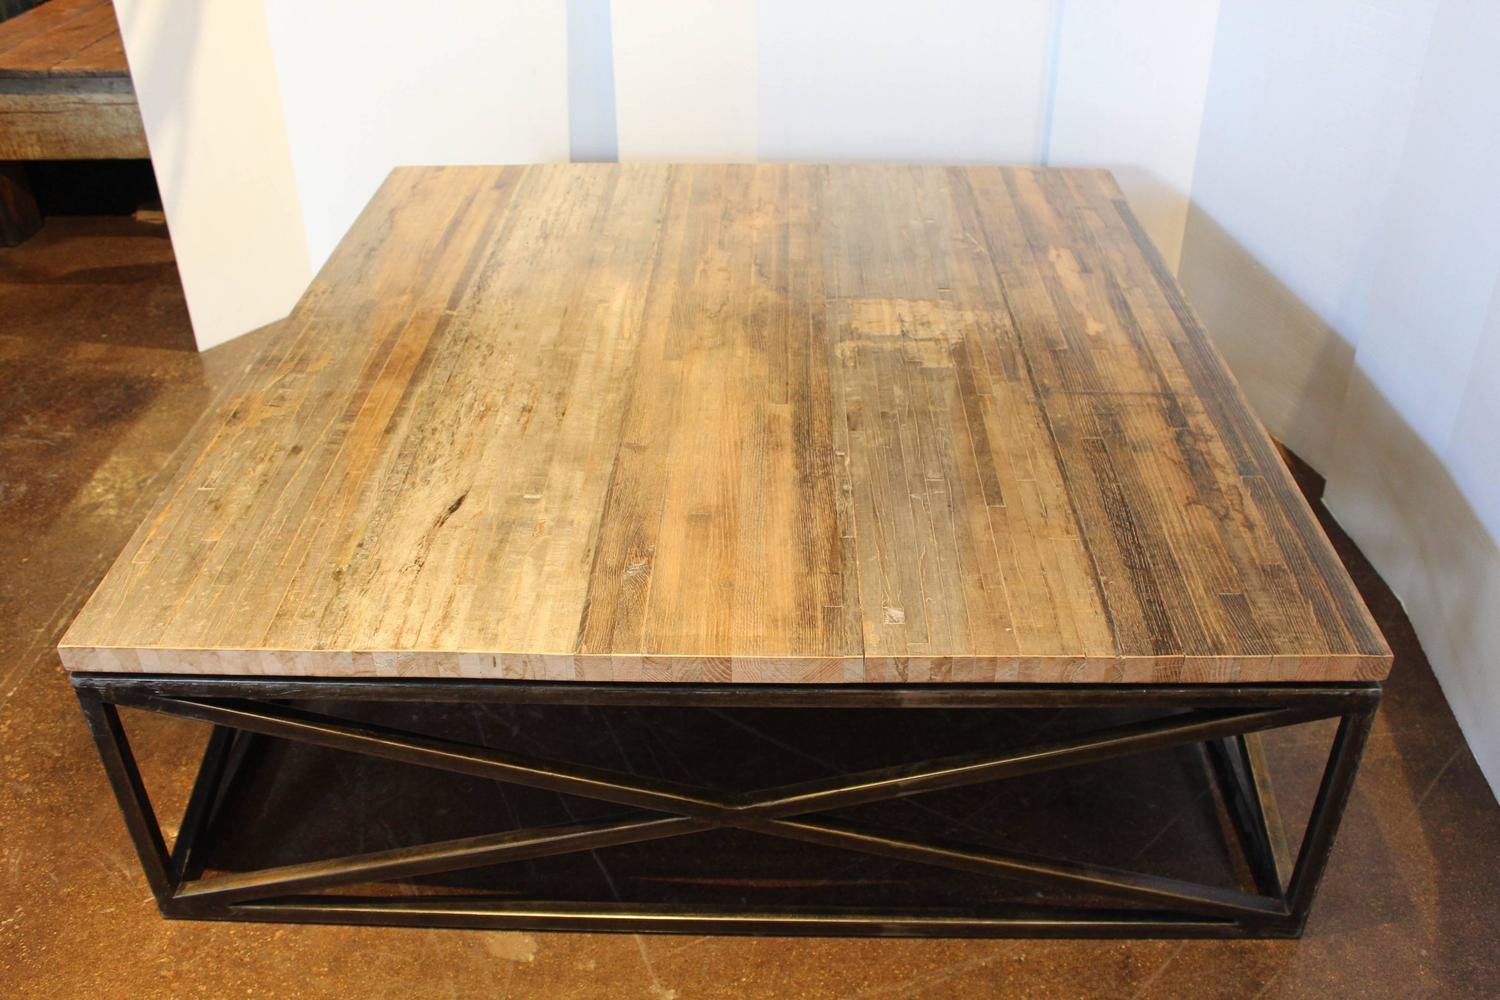 Https Www 1stdibs Com Furniture Tables Coffee Tables Cocktail Tables Transitional Maplewood Criss Cross Design Coffee Table Id F 4575583